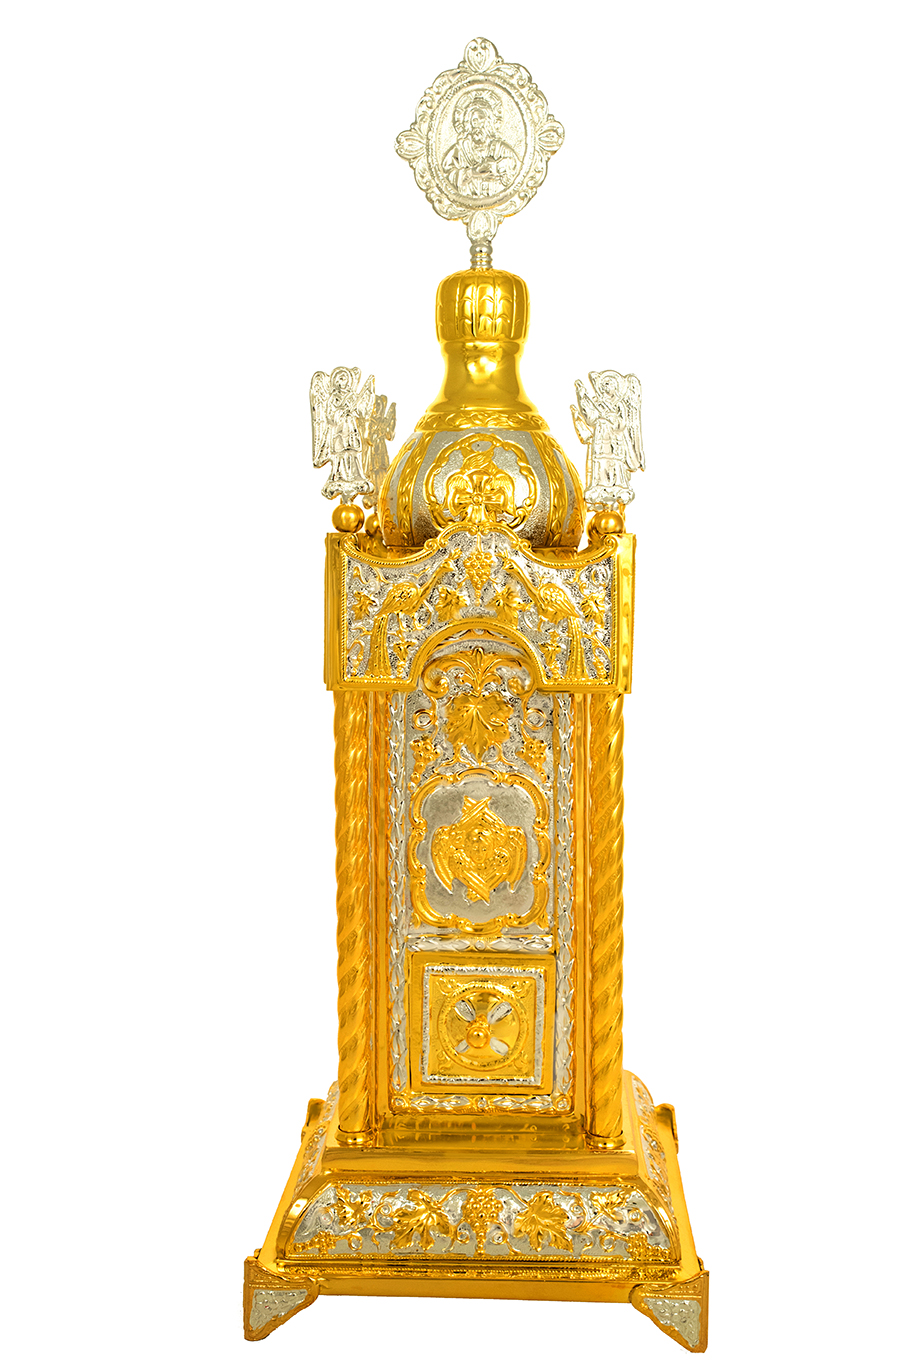 Holy Table Orthodox Tabernacle Rectanqular with Colums Metal Decorations Gold and Silver Plated